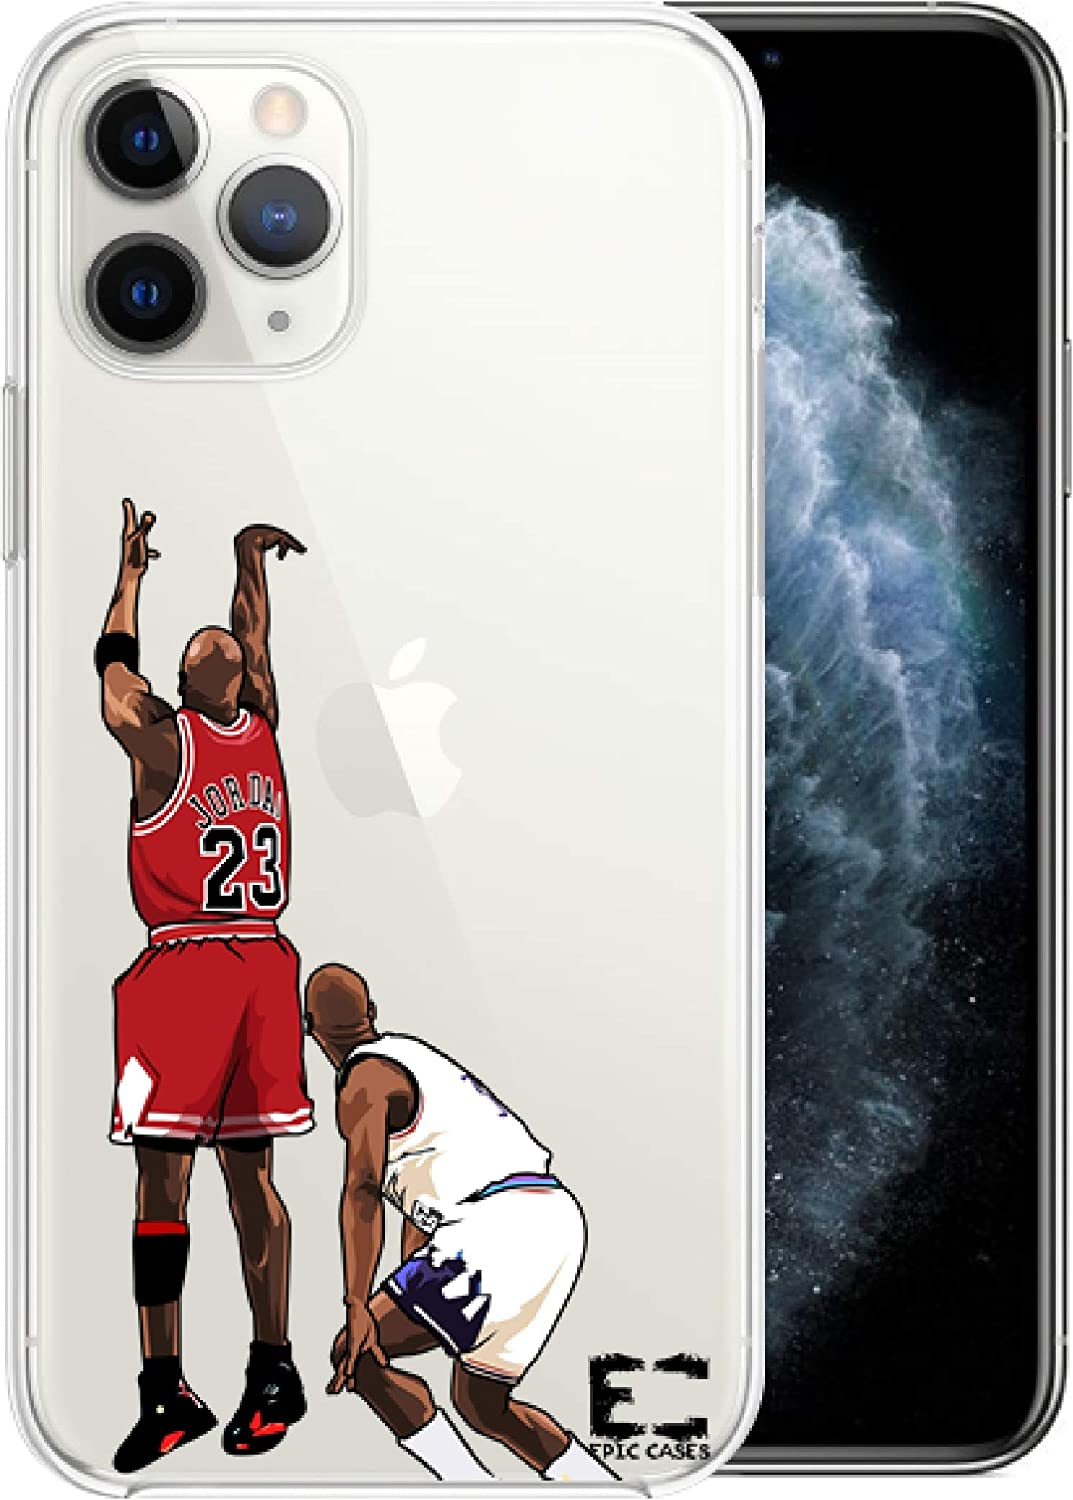 Epic Cases iPhone 6 Plus iPhone 7/iPhone 8 Plus Case Ultra Slim Crystal Clear Basketball Series Soft Transparent TPU Case Cover Apple (MJ, iPhone 6/7/8 Plus)